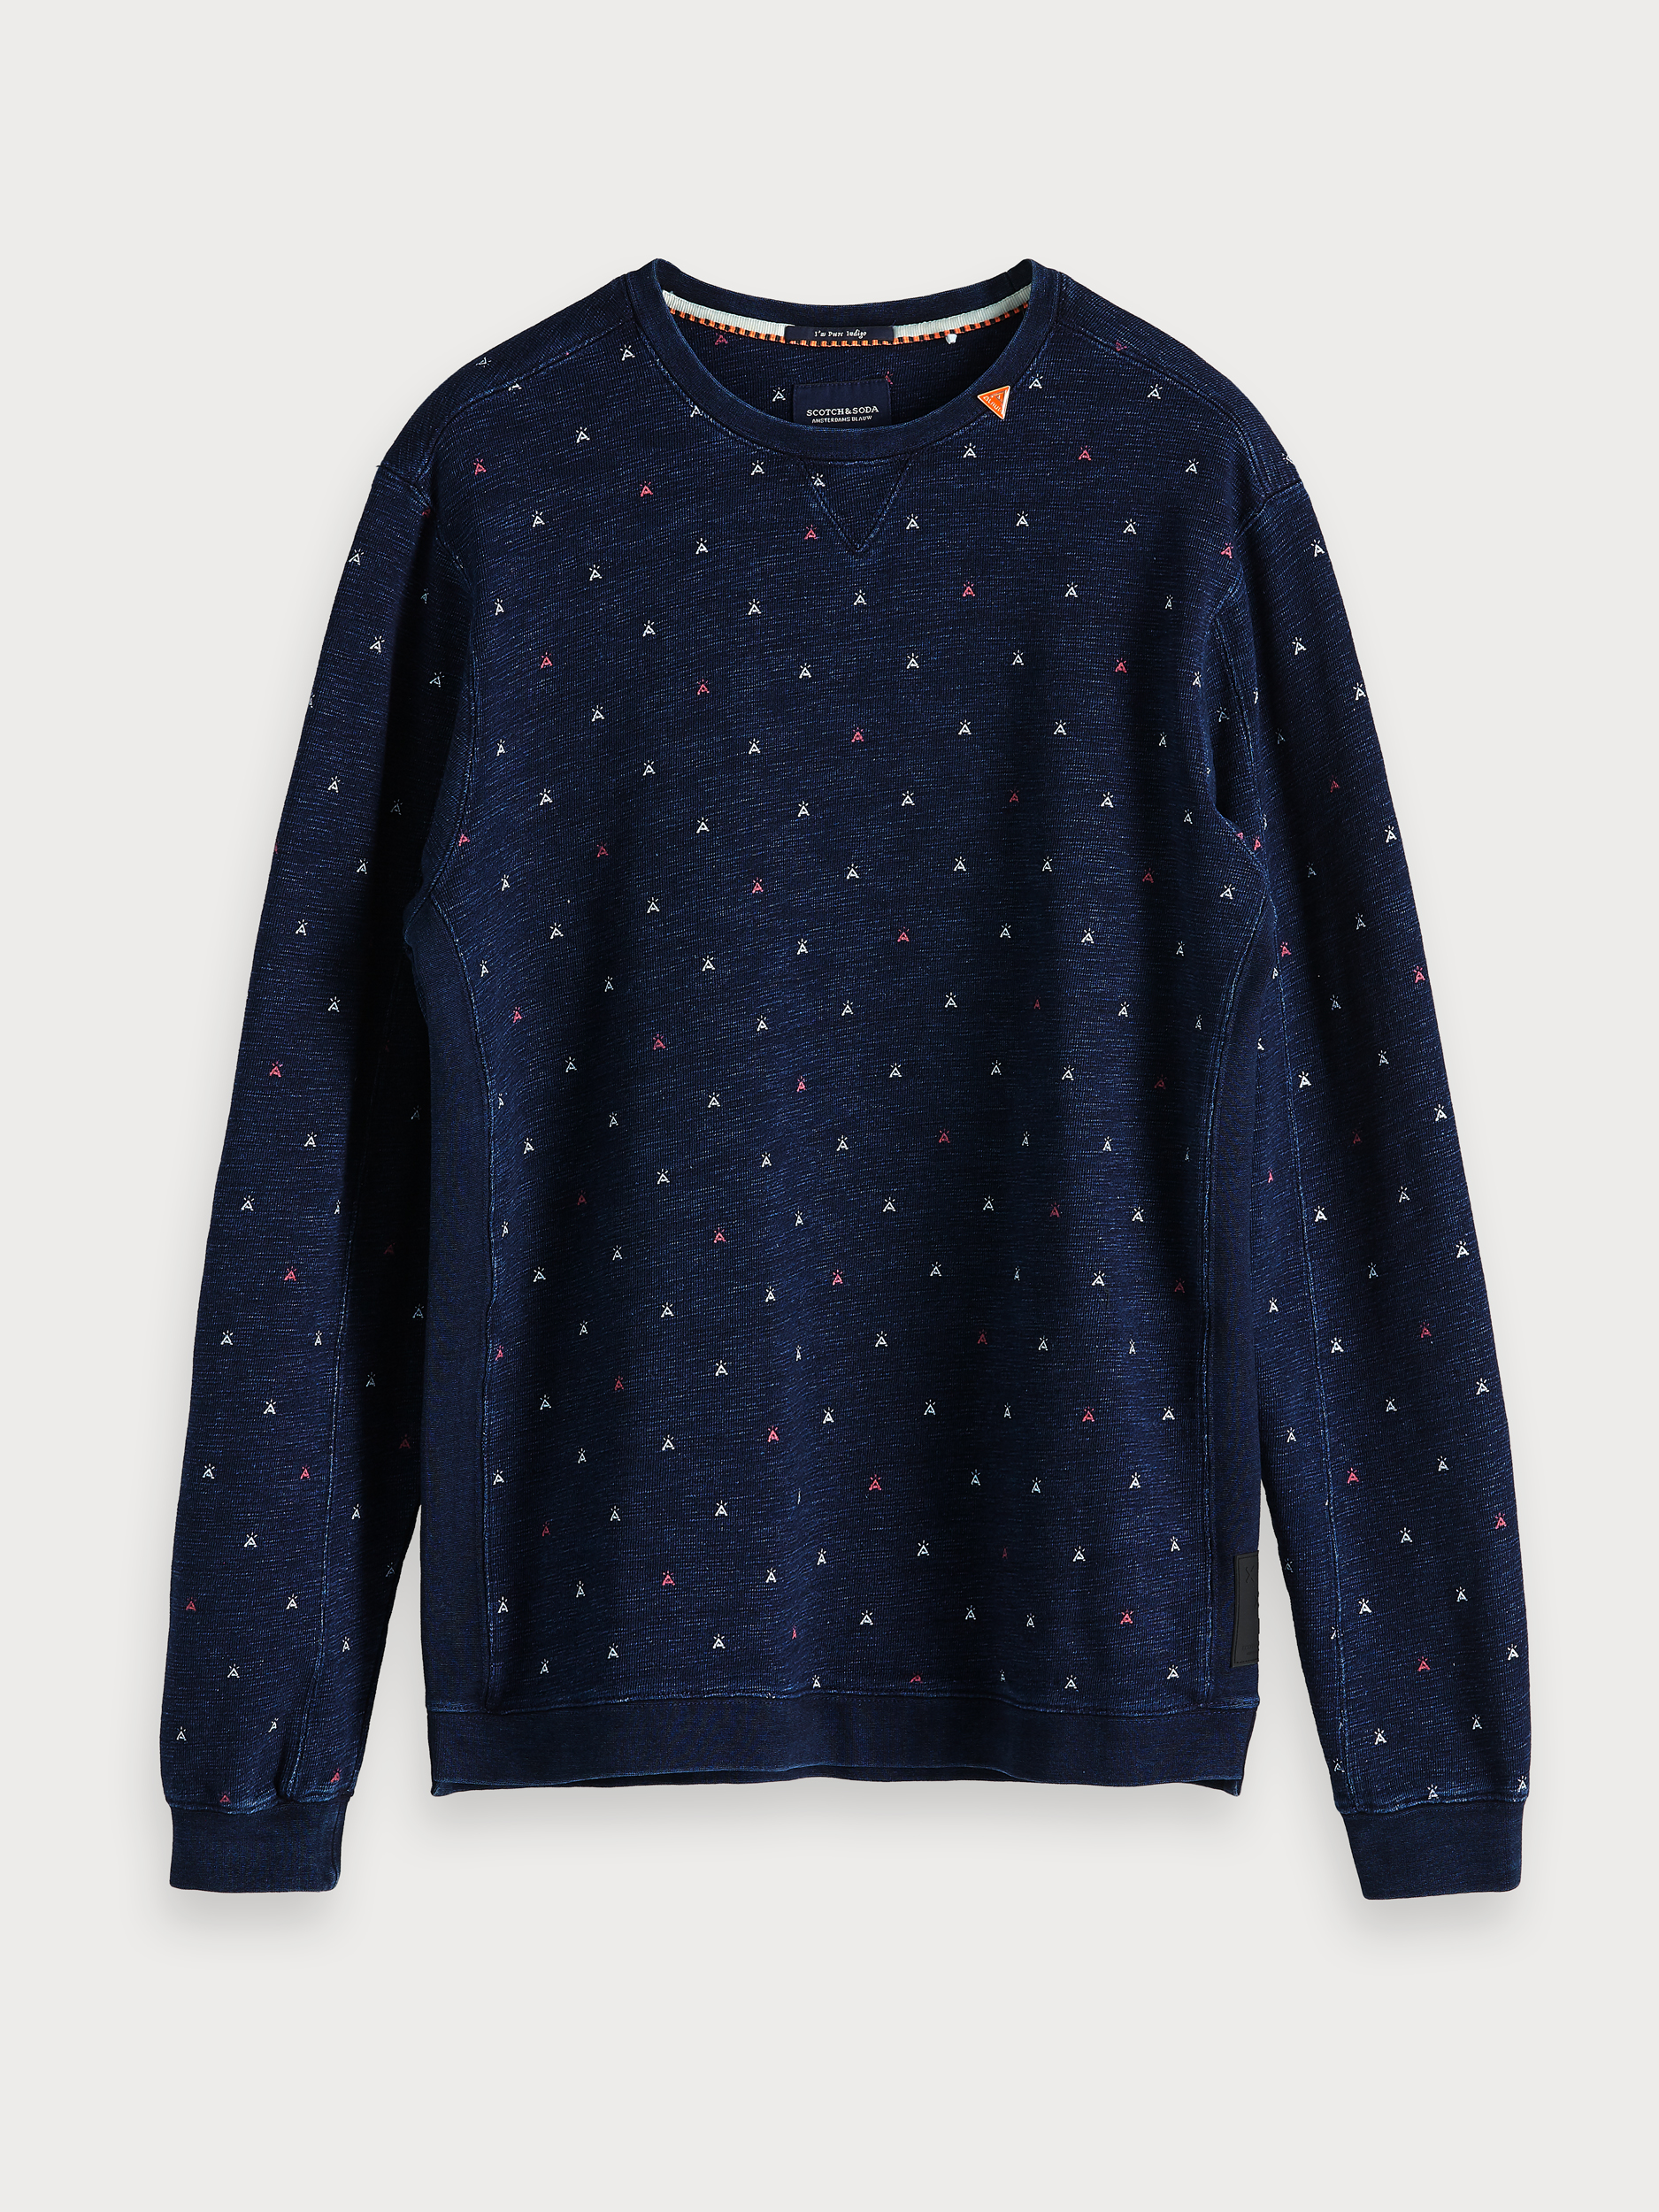 Pullovers for men